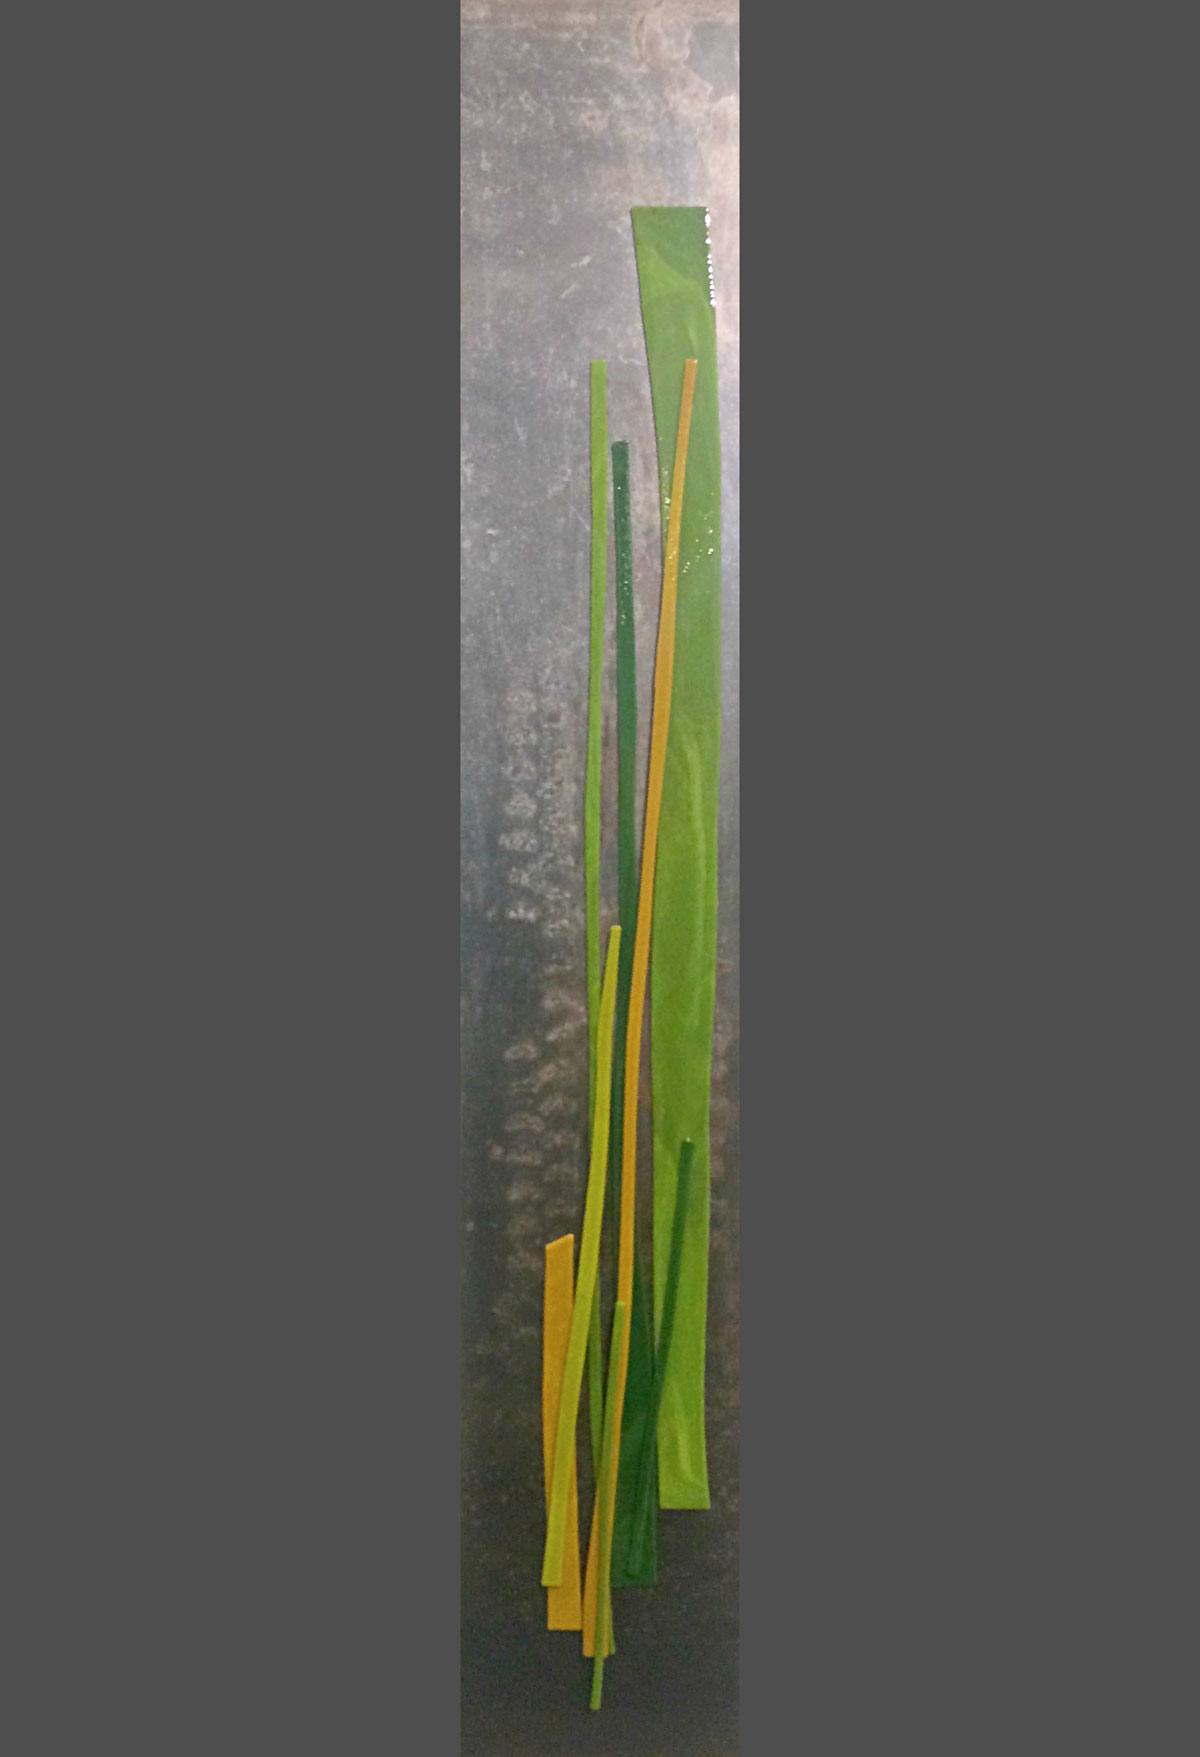 River Flow 1, cast glass by Heather Cuell | Effusion Art Gallery + Cast Glass Studio, Invermere BC